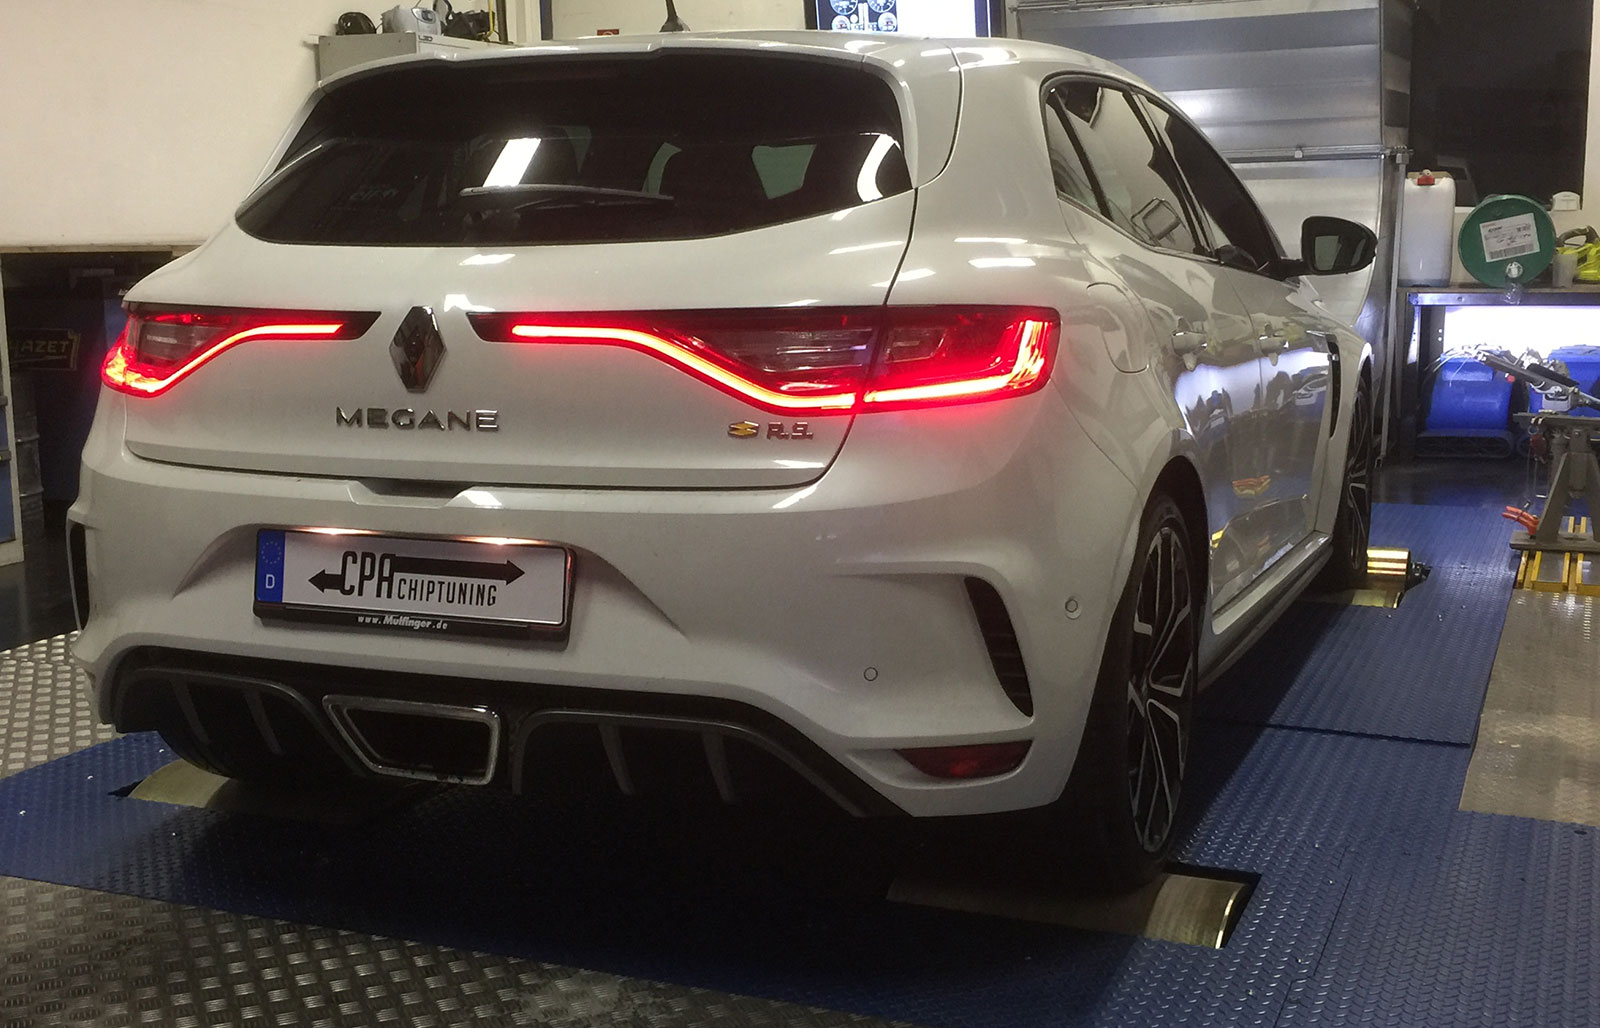 Chiptuning Rally Technology For The Road Megane Rs